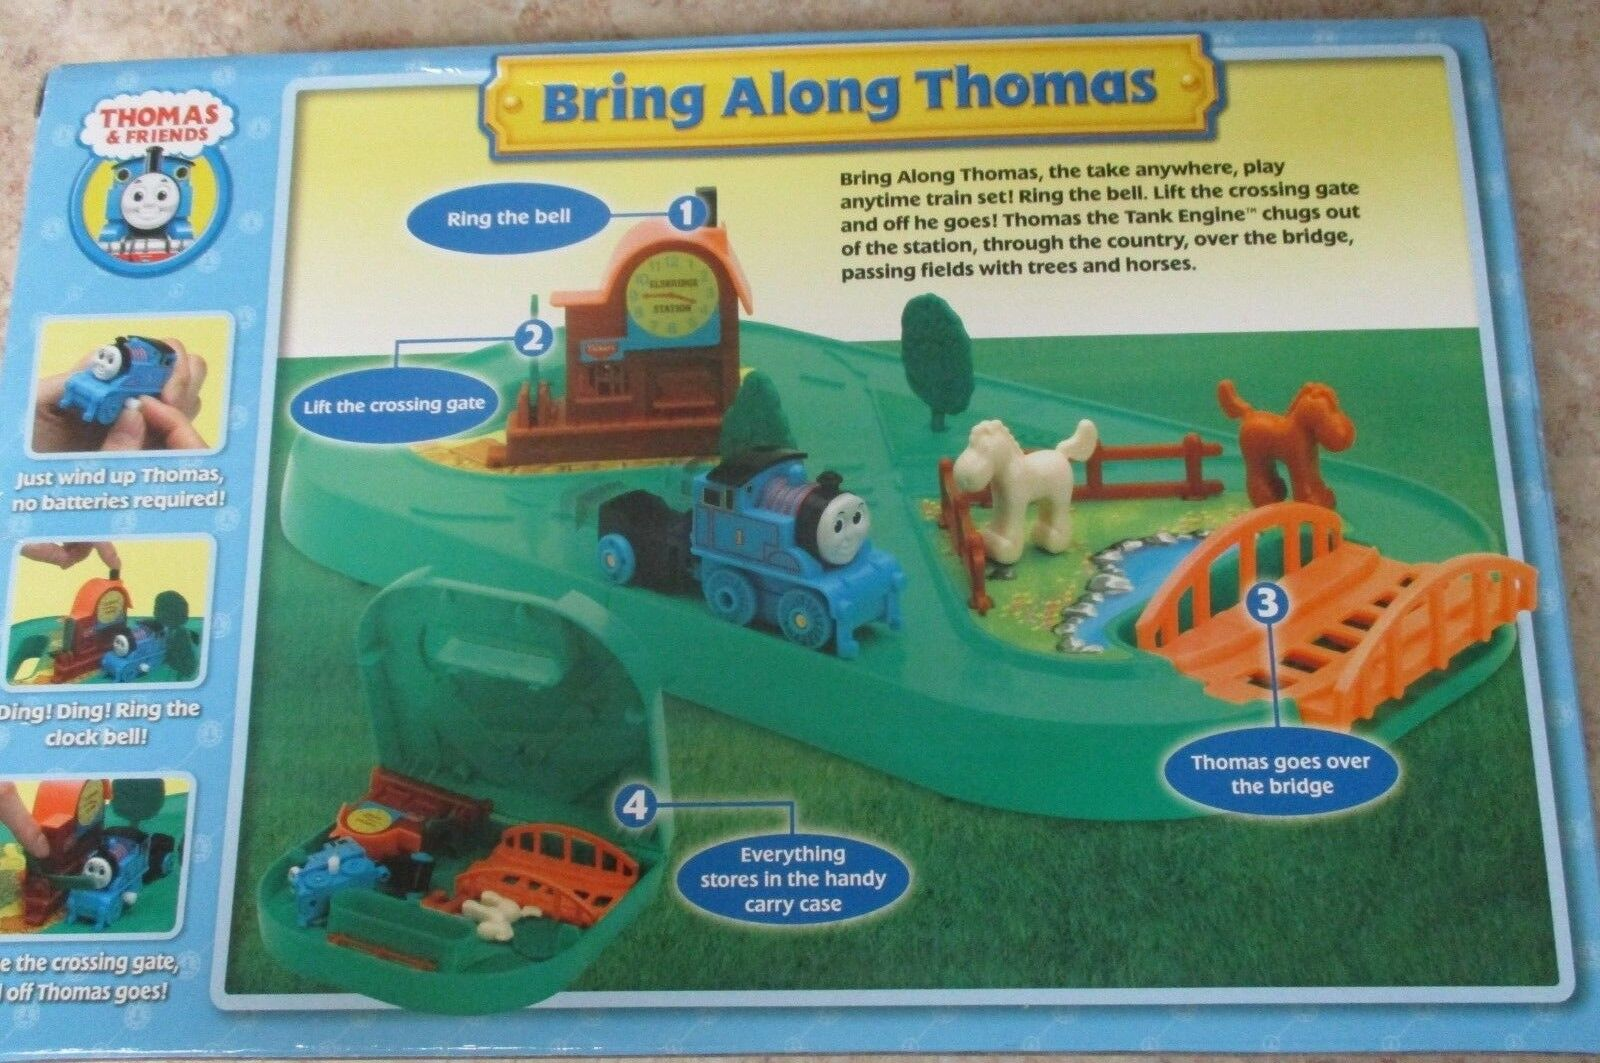 NEW In Orig. Box, Bring Along Thomas, Thomas & Friends Tank Engine Toy Vtg 2006